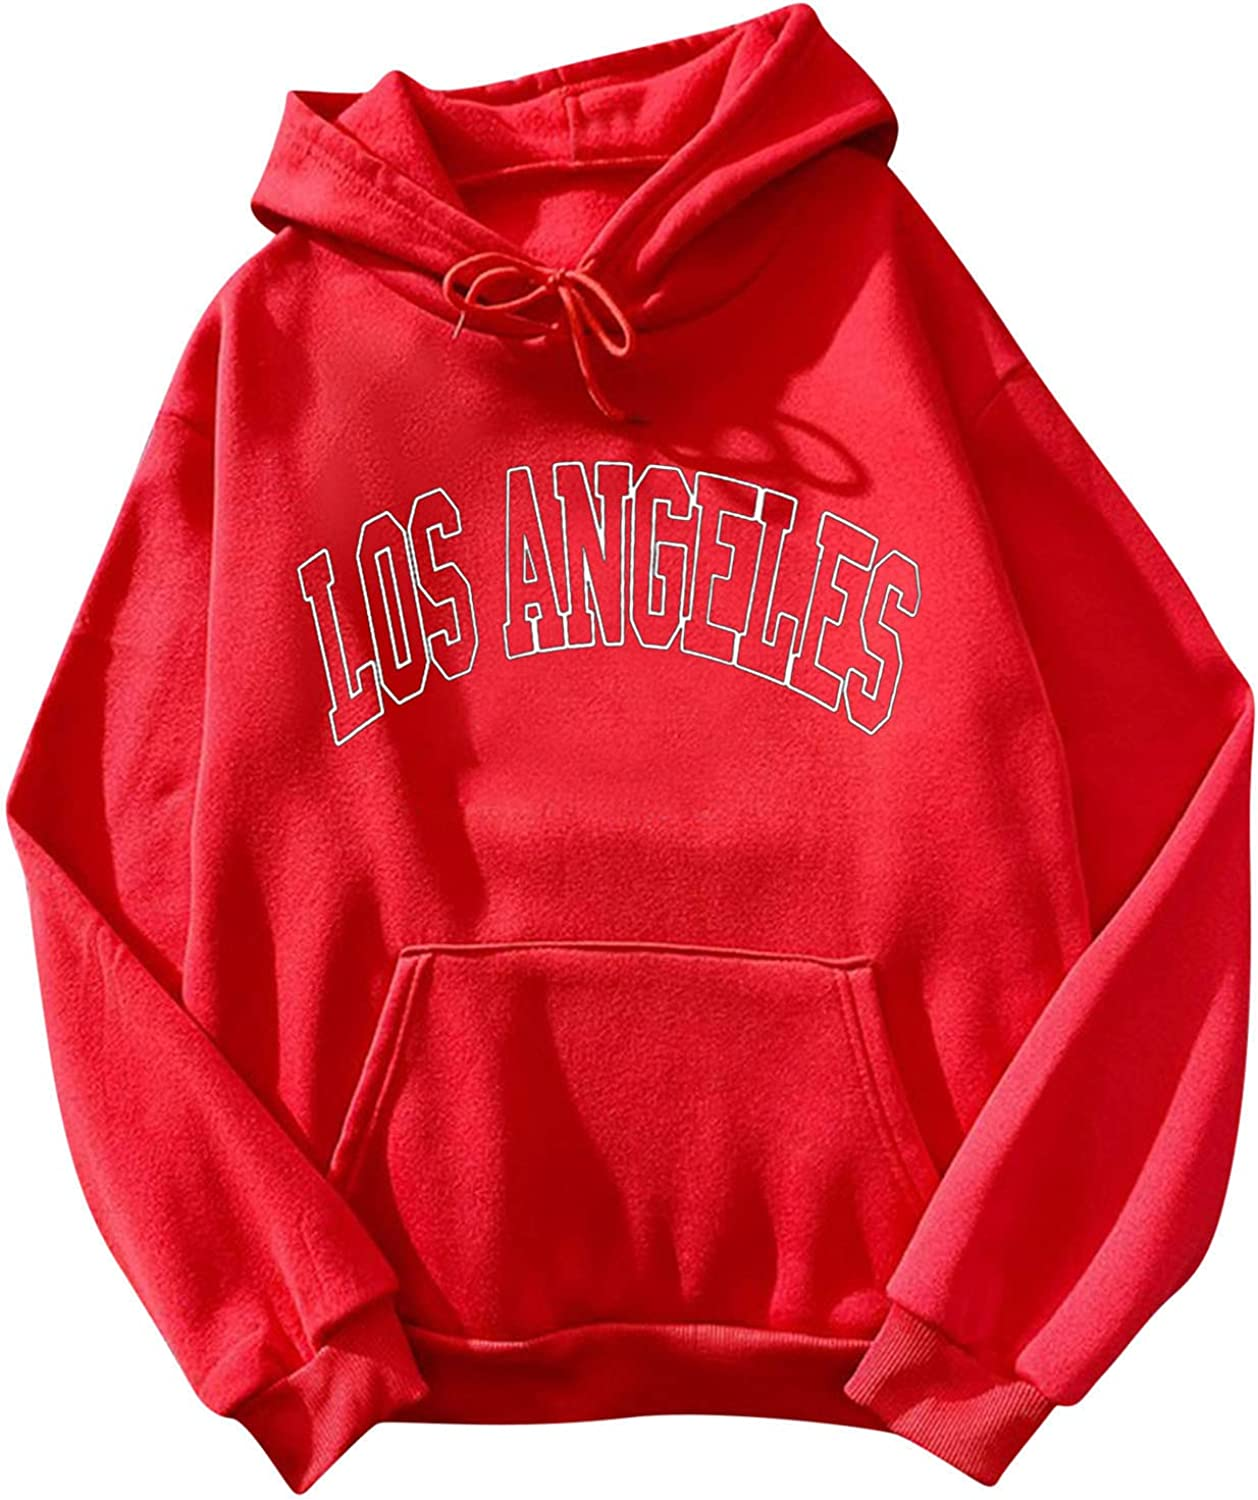 Plus Size Hoodies for Women Pullover,Women's Casual Los Angeles Printed Long Sleeve Hooded Sweatshirts with Pockets